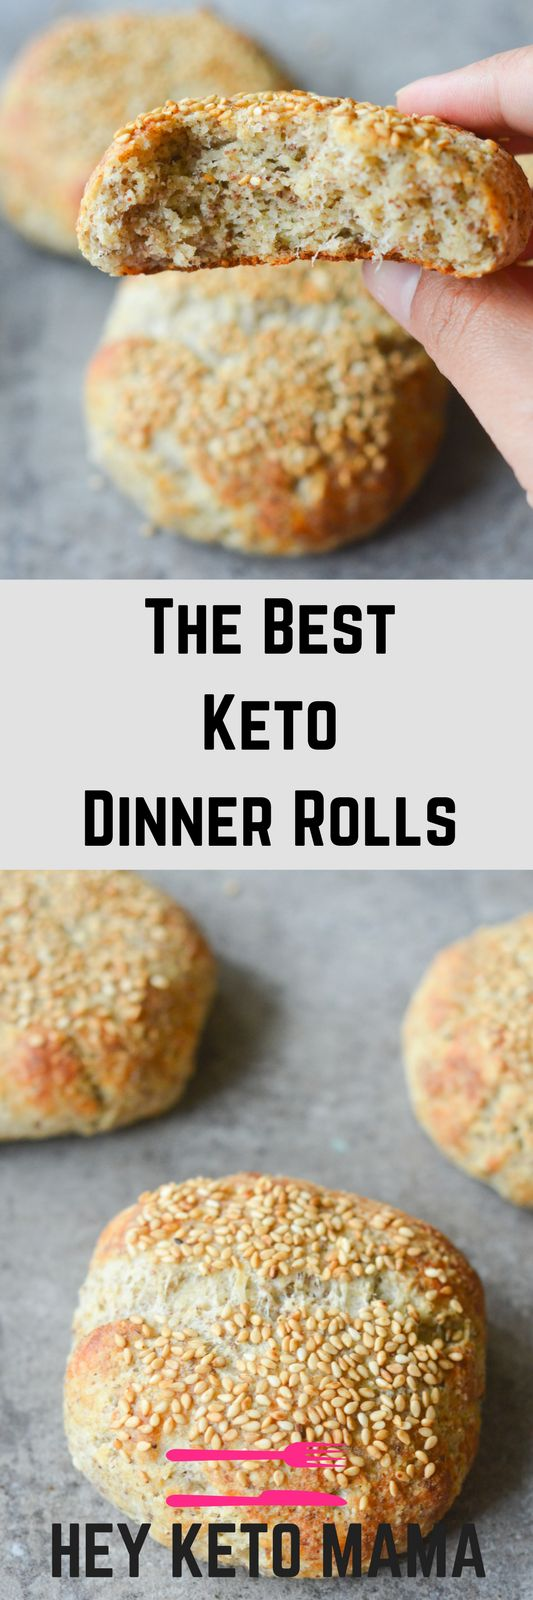 These are the best keto dinner rolls to help replace bread in your low carb lifestyle. This recipe is easy, filling, and delicious!